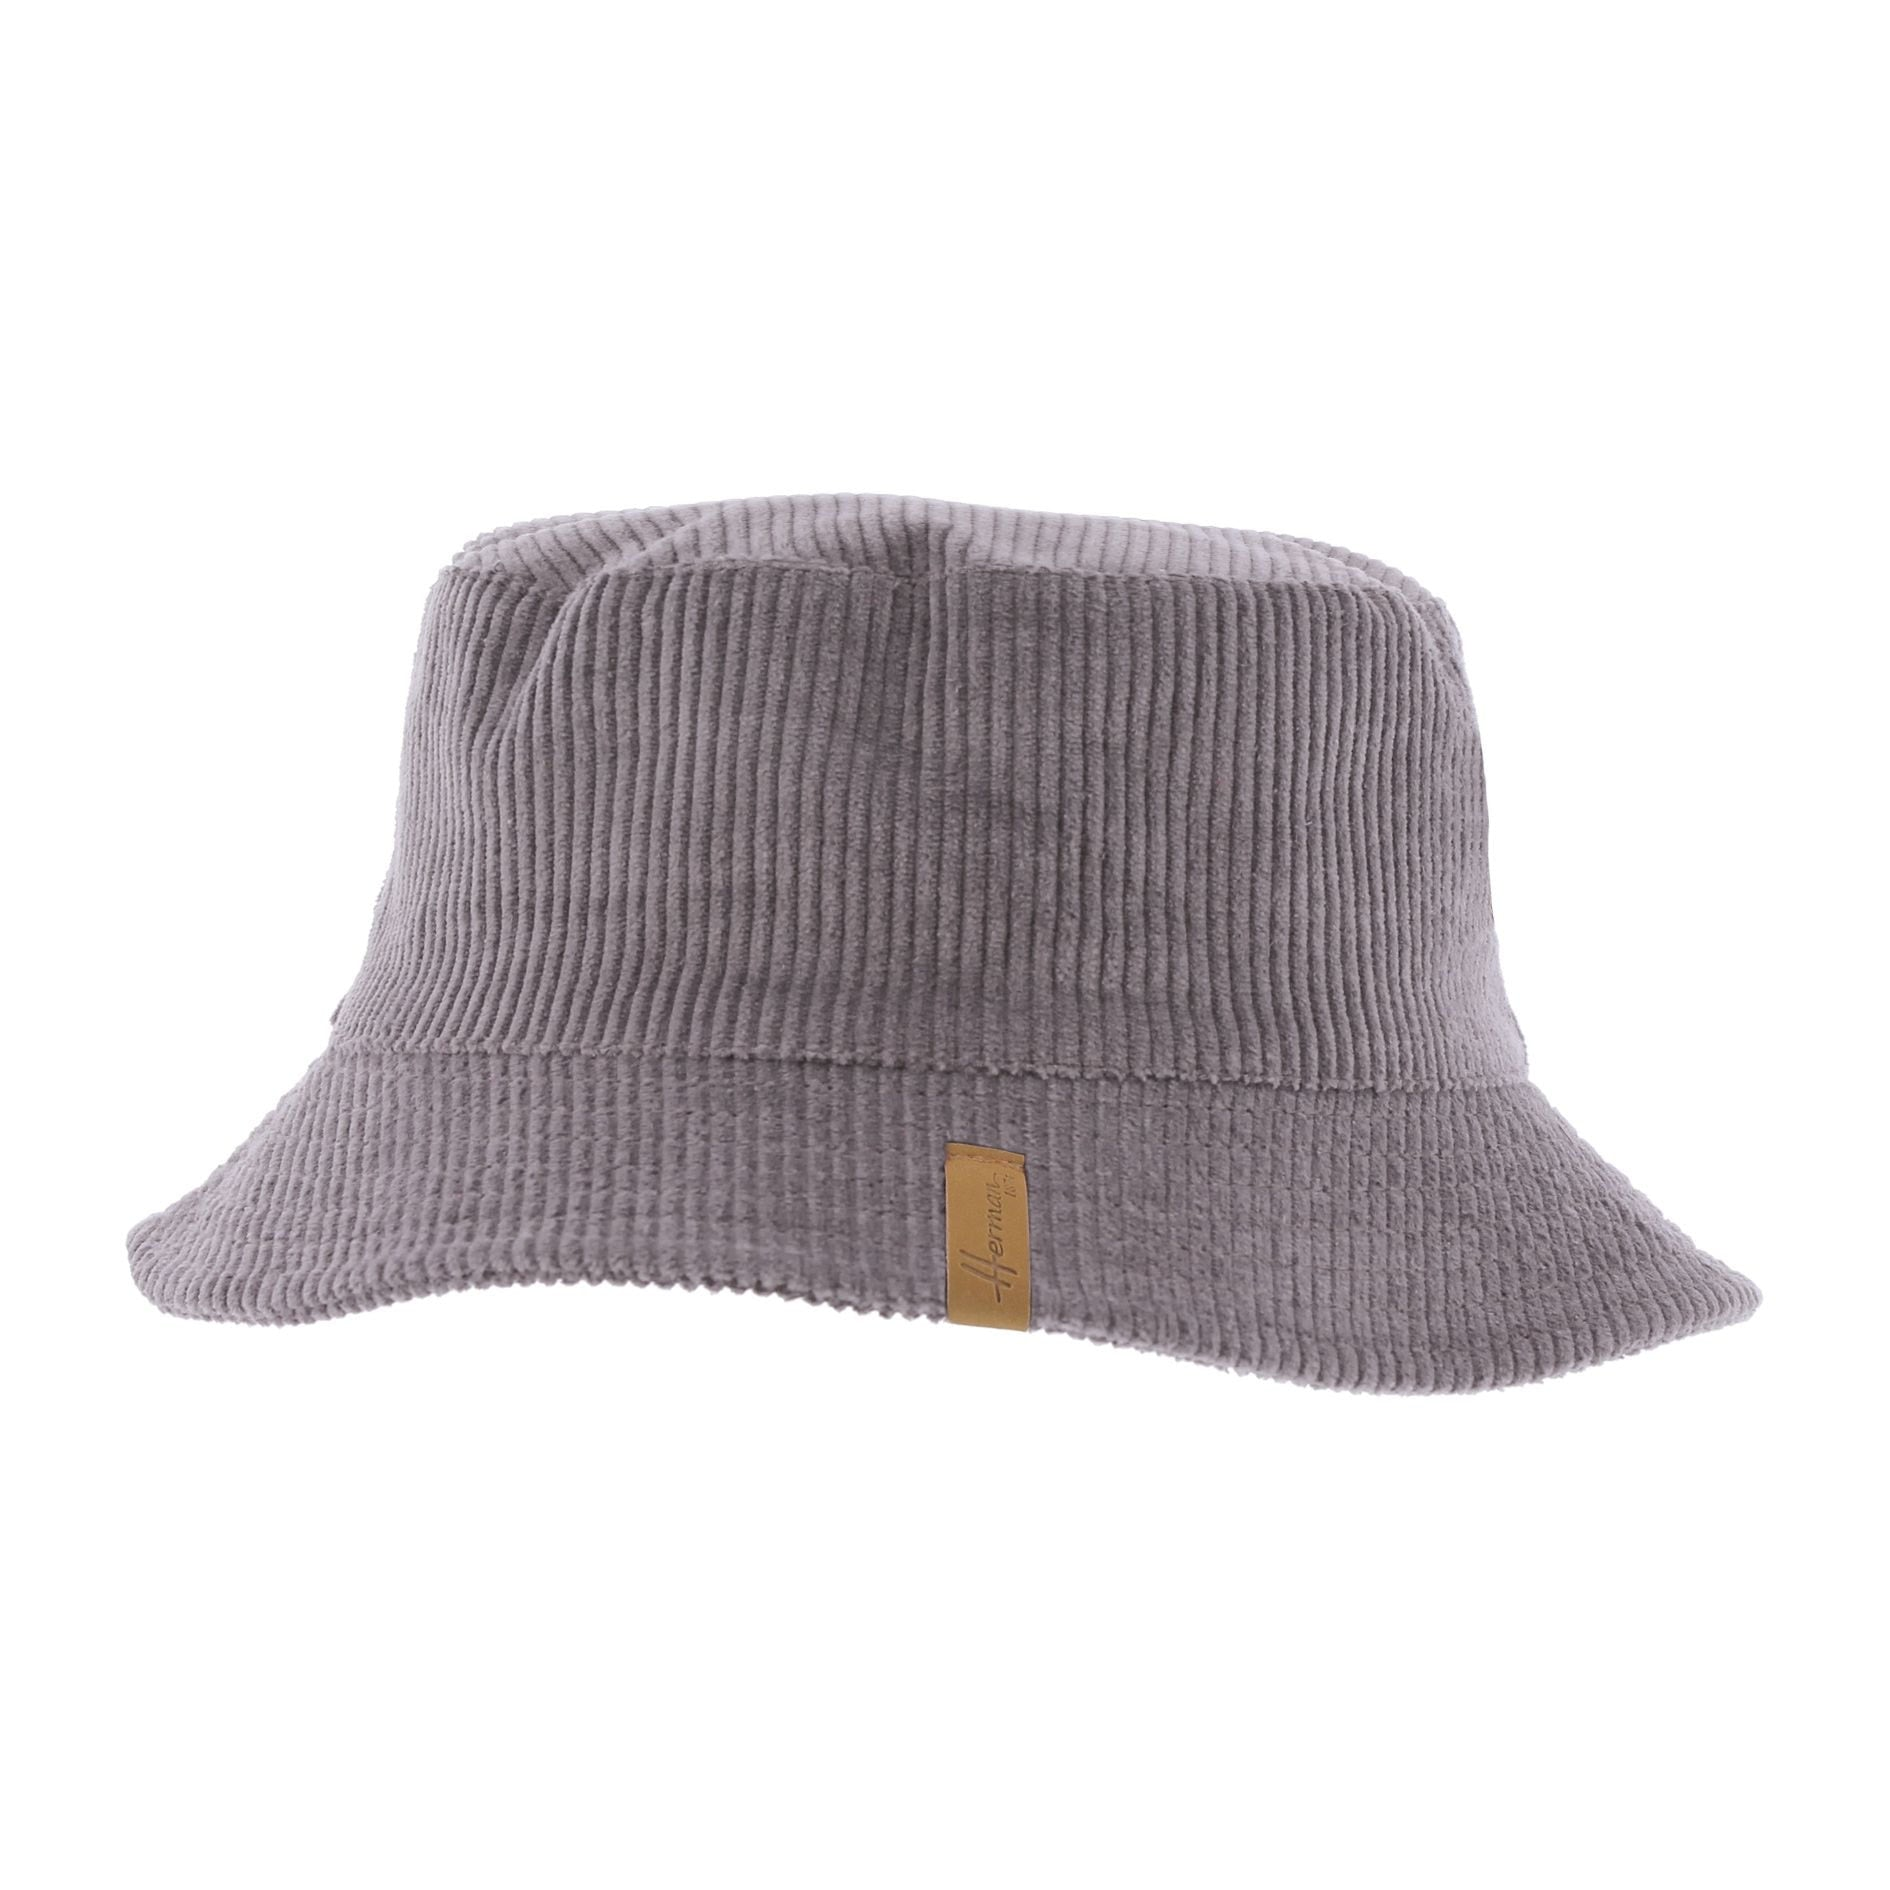 Sonde Corduroy Bucket Hat - shop idPearl